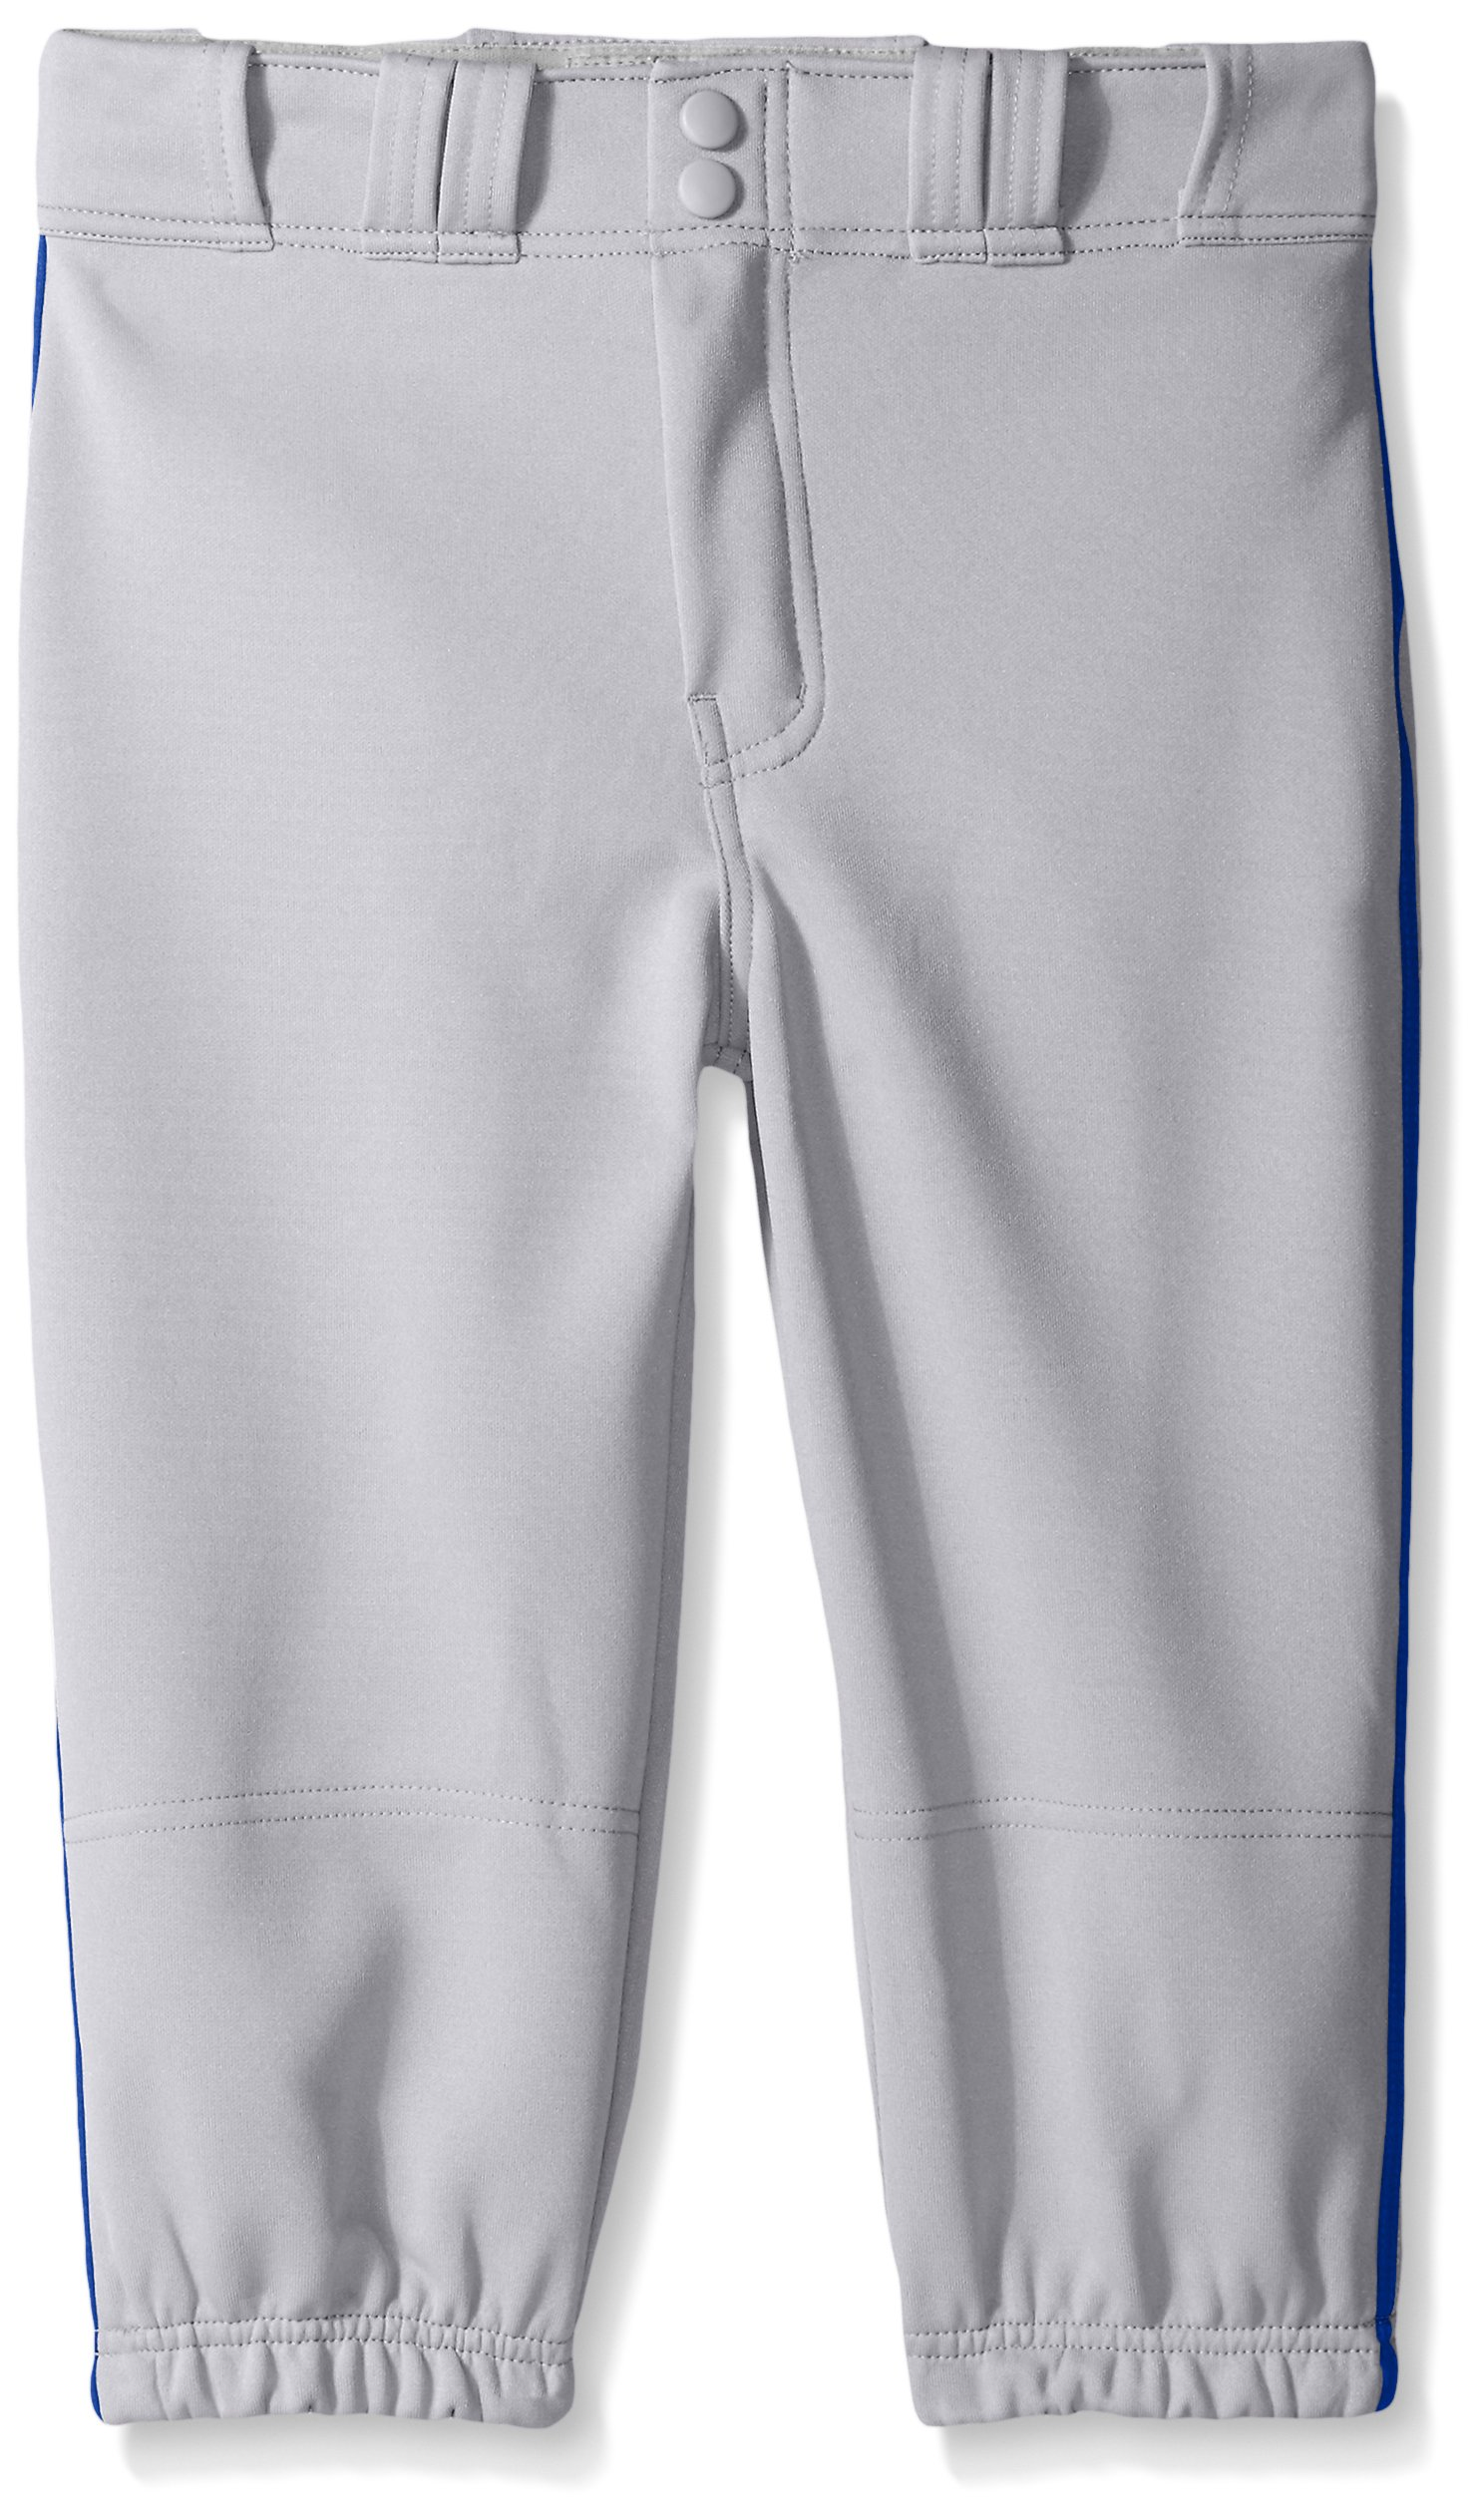 Easton Boys PRO Plus Piped Knicker, Grey/Royal, Small by Easton